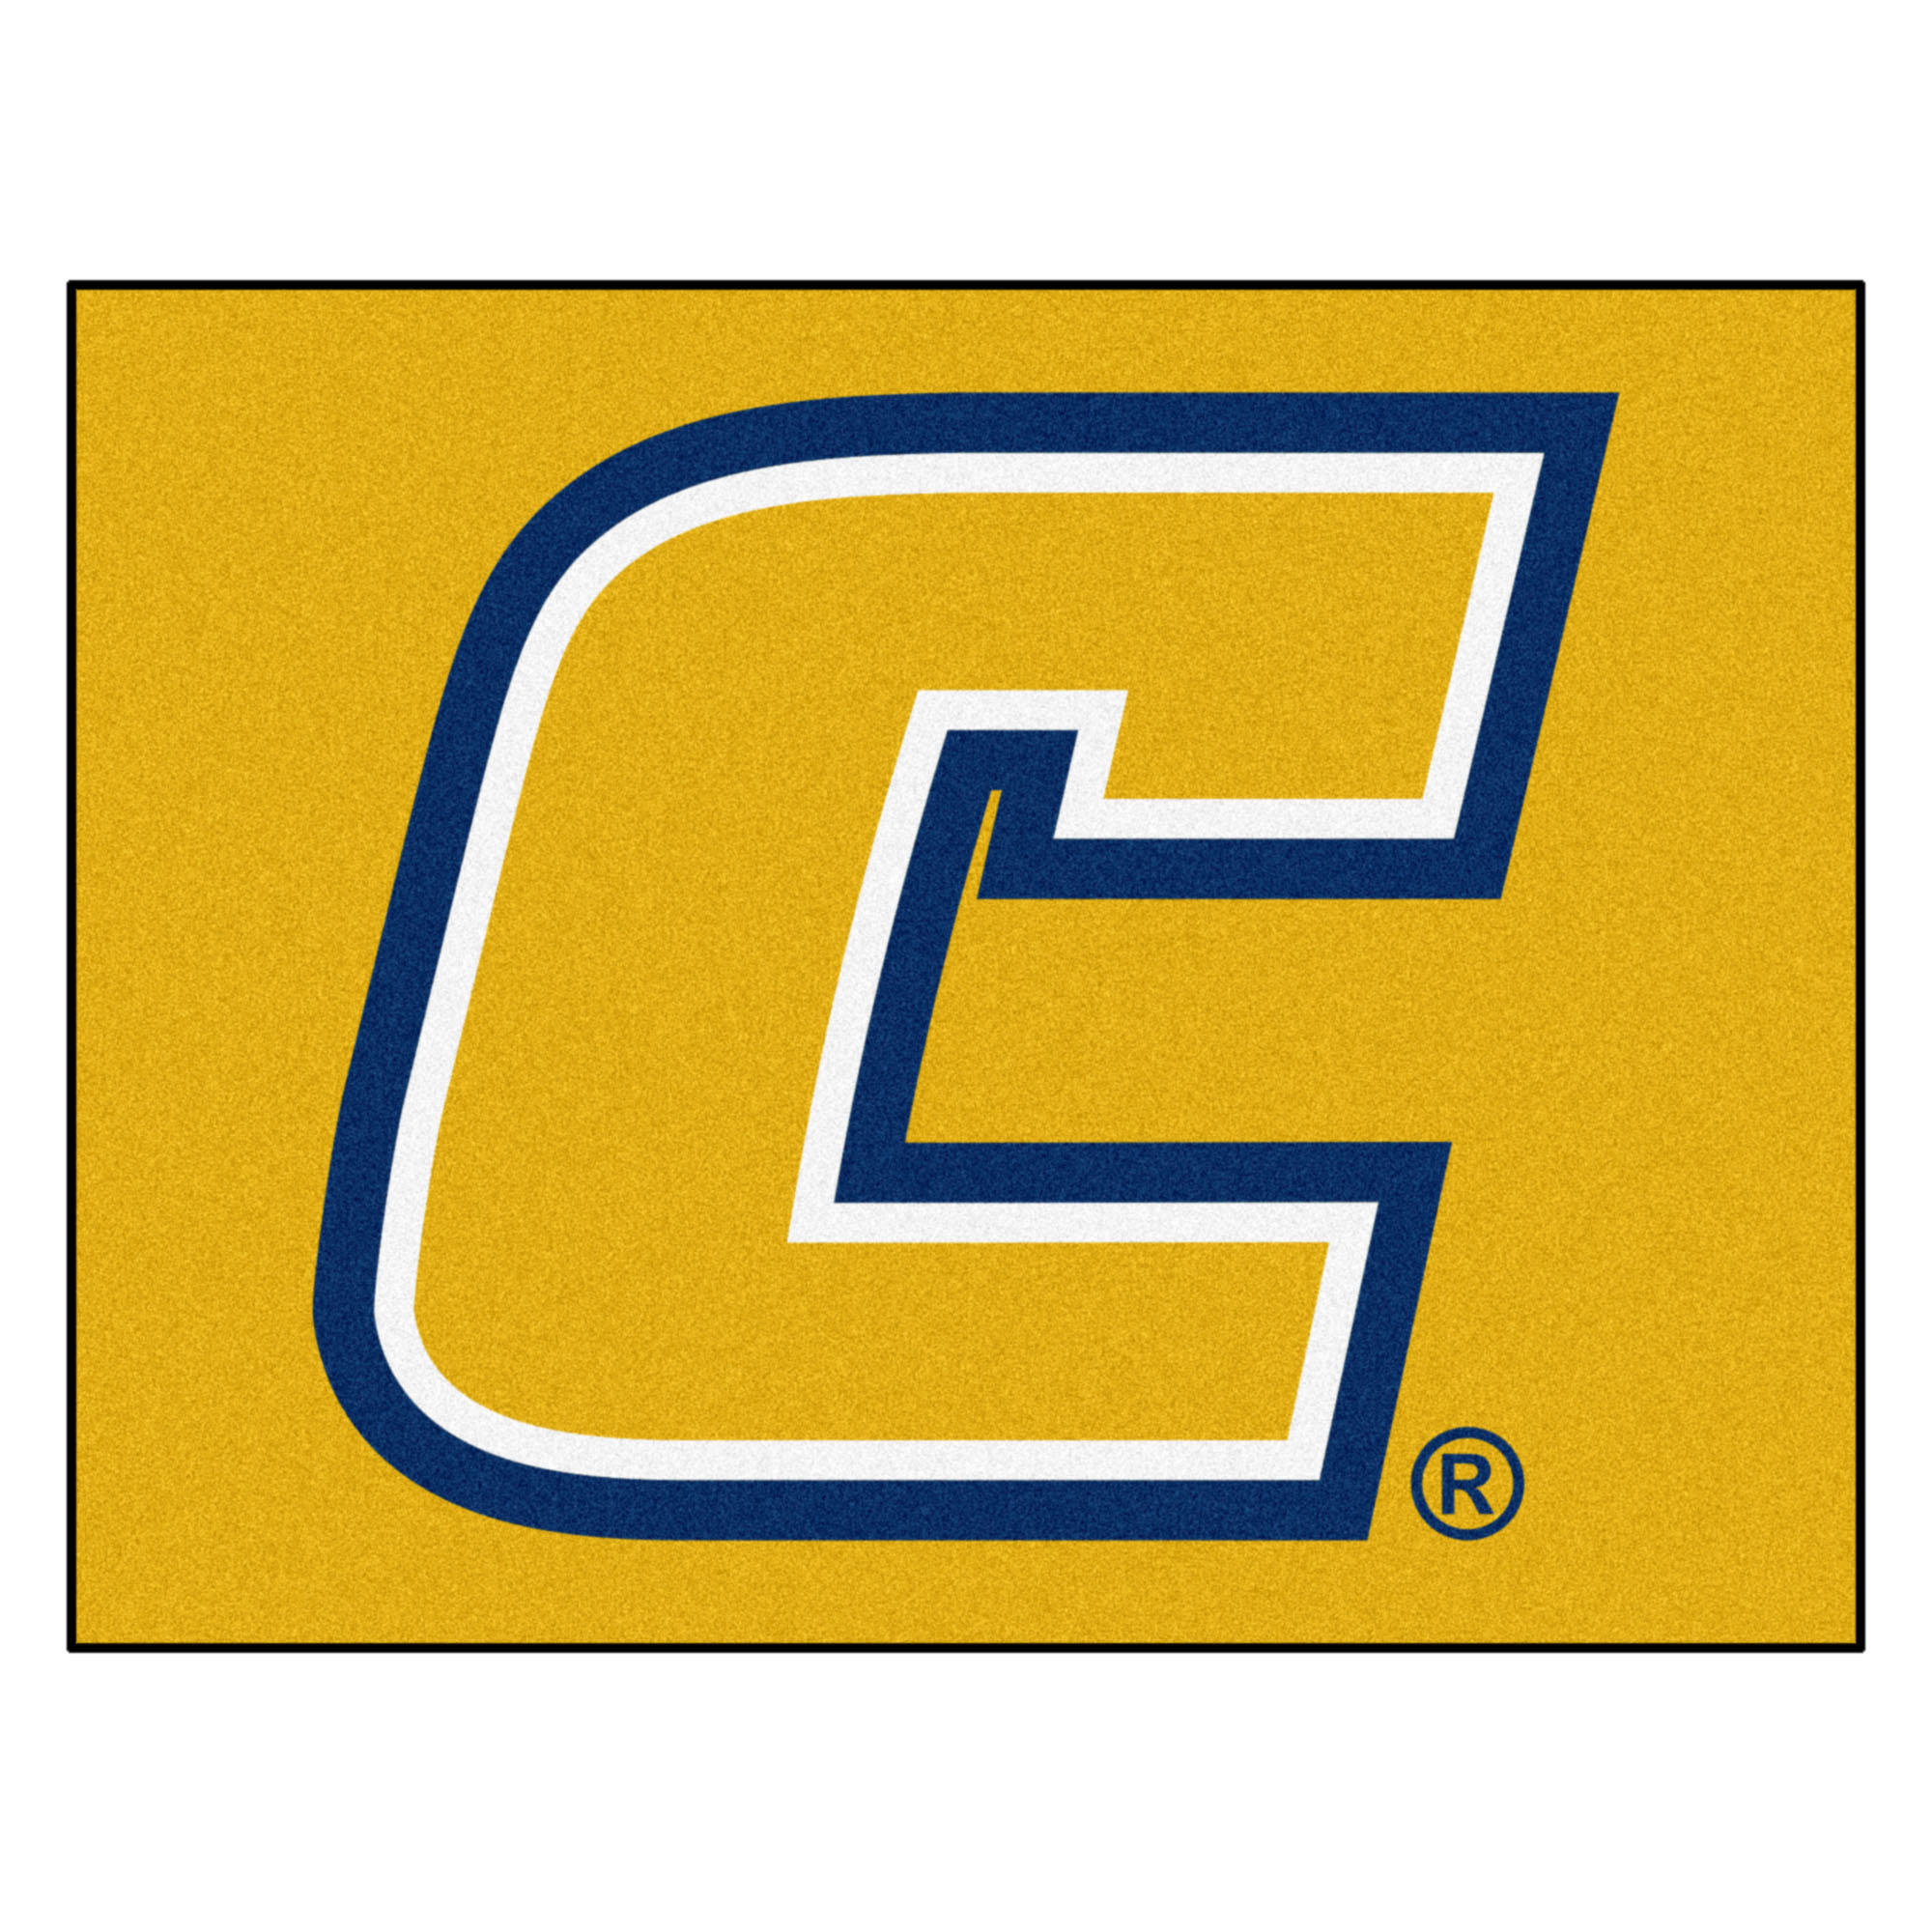 2182 Fanmats College NCAA University Tennessee Chattanooga 33.75 Inch x 42.5 Inch Nylon Face durable Non-skid chromojet-printed washable Rectangular All Star Mat